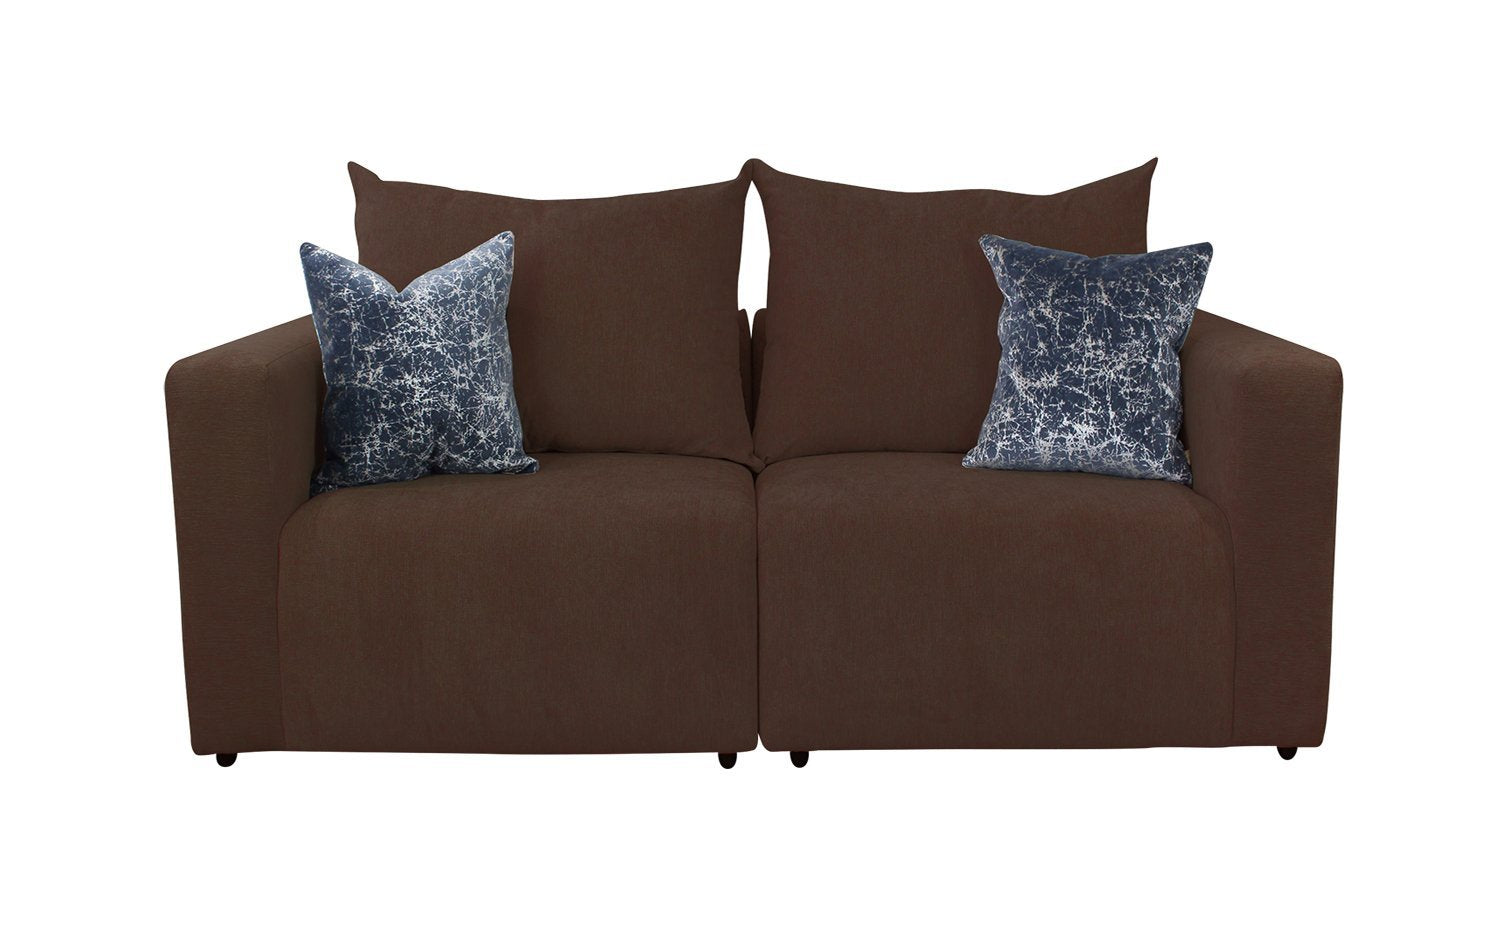 Pulse 2-Seater Sofa - Mocha